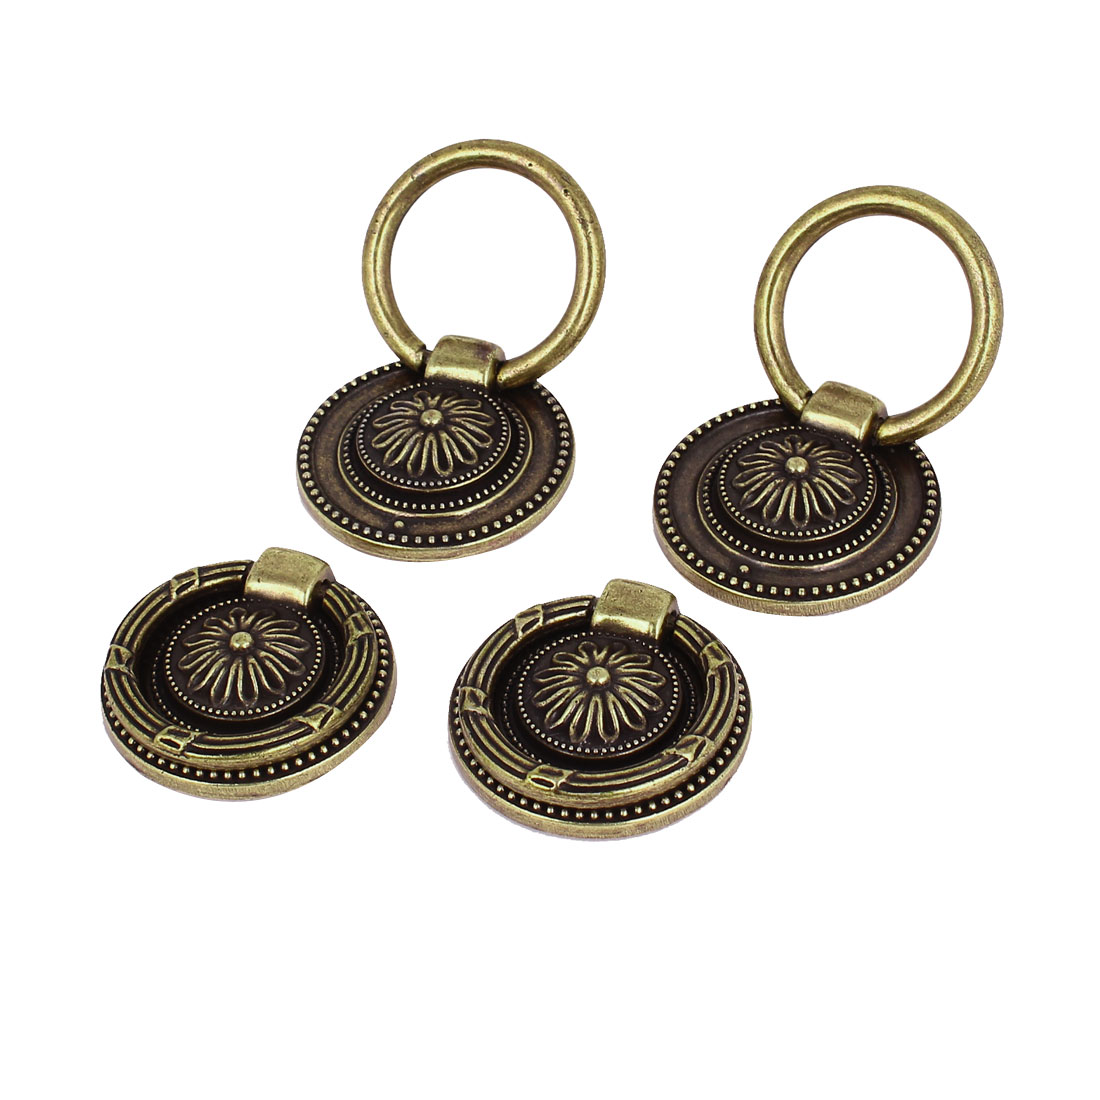 Cabinet Cupboard Drawer Door Retro Sytle Pull Handle Knob Ring 38mm Dia 4pcs